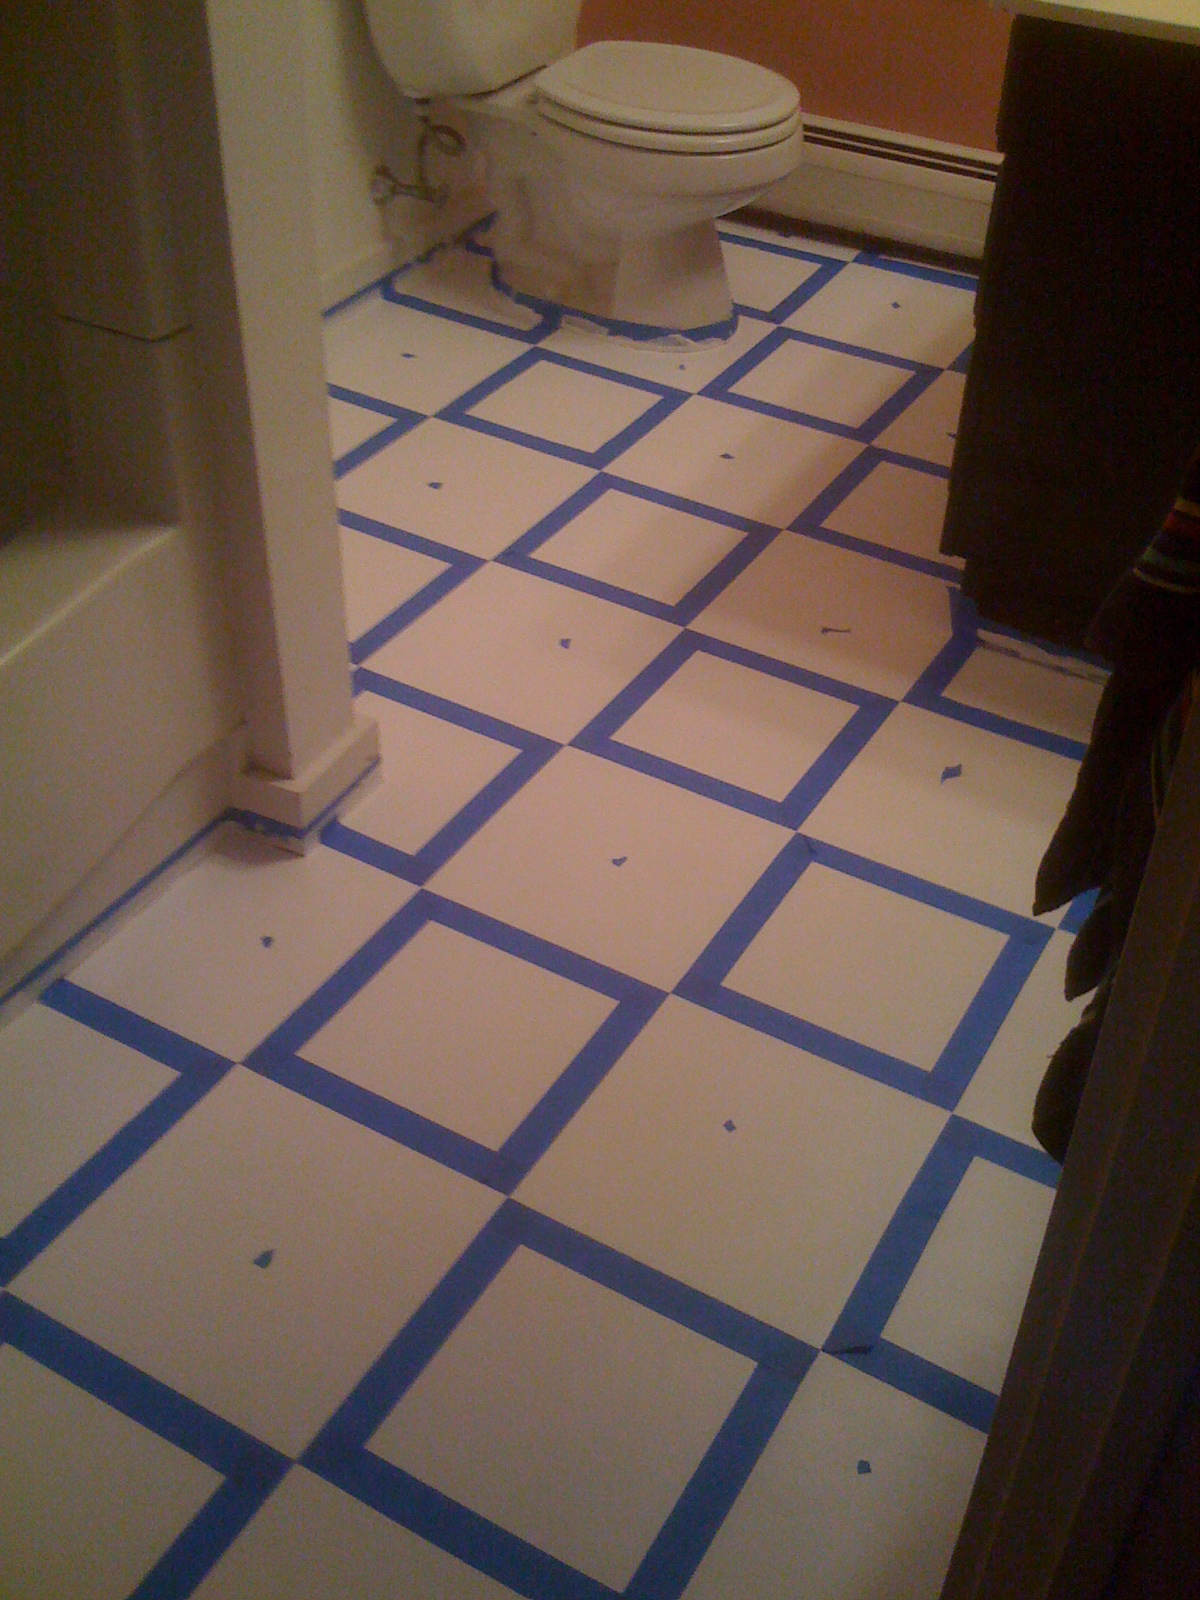 Diy painting old vinyl floor tiles mary wiseman designs step 7 painting dailygadgetfo Image collections